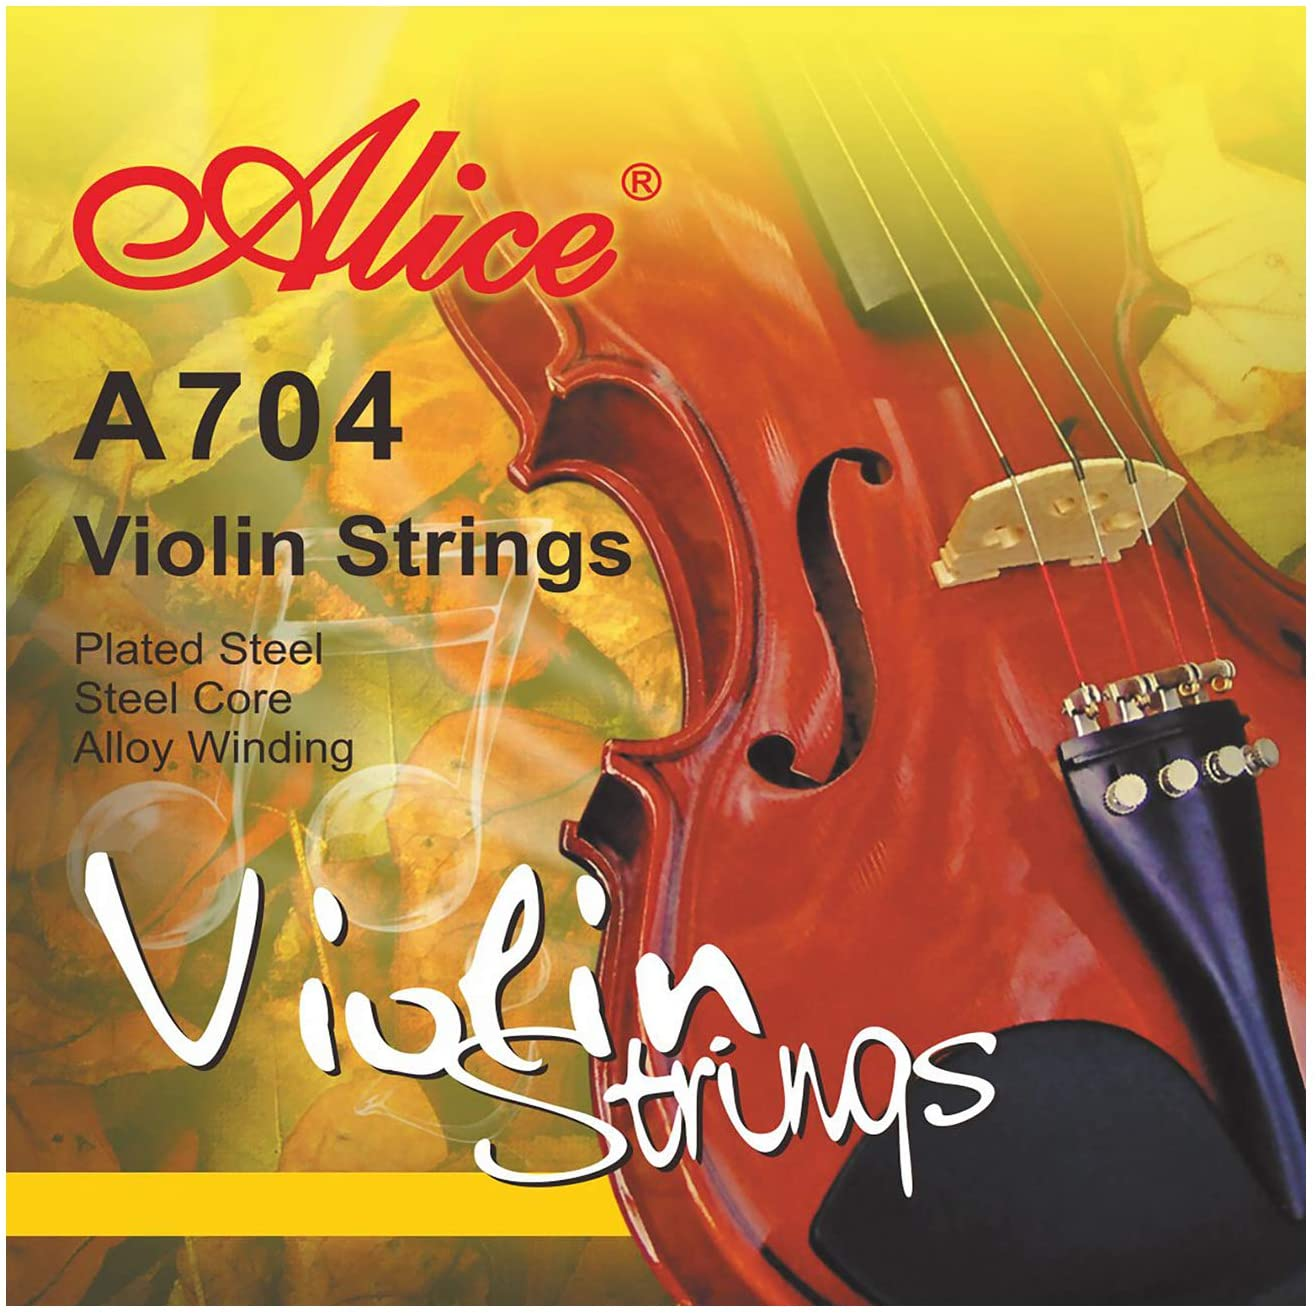 Alice Violin Strings 4/4 Size Steel Core Strings with Al-Mg and Ni-Fe Winding, Nickel-plated Ball-end for Violins Beginners, 3 Packs Set